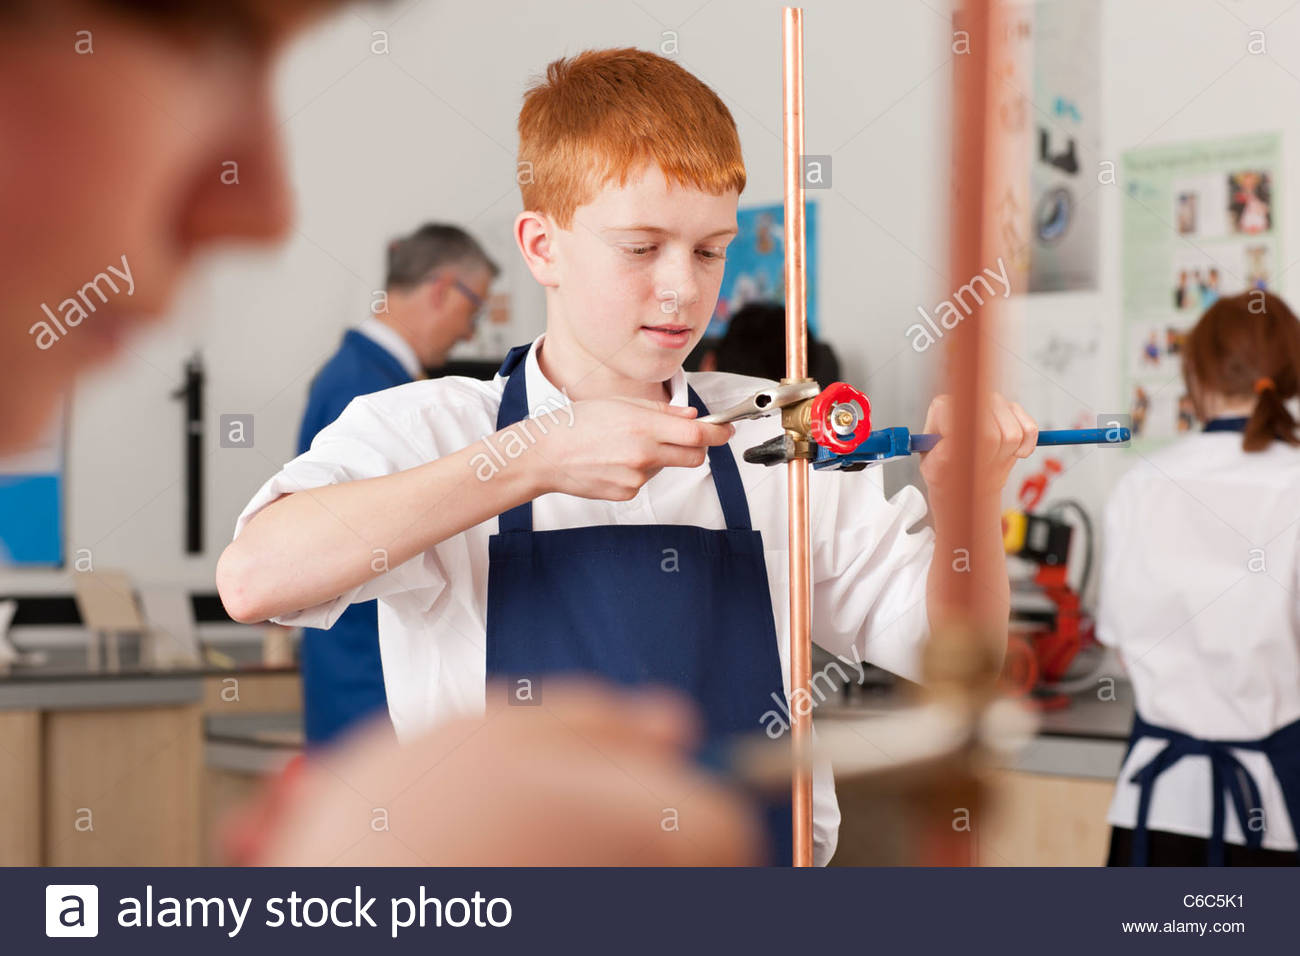 Student using wrench to tighten valve on cooper plumbing pipe - Stock Image